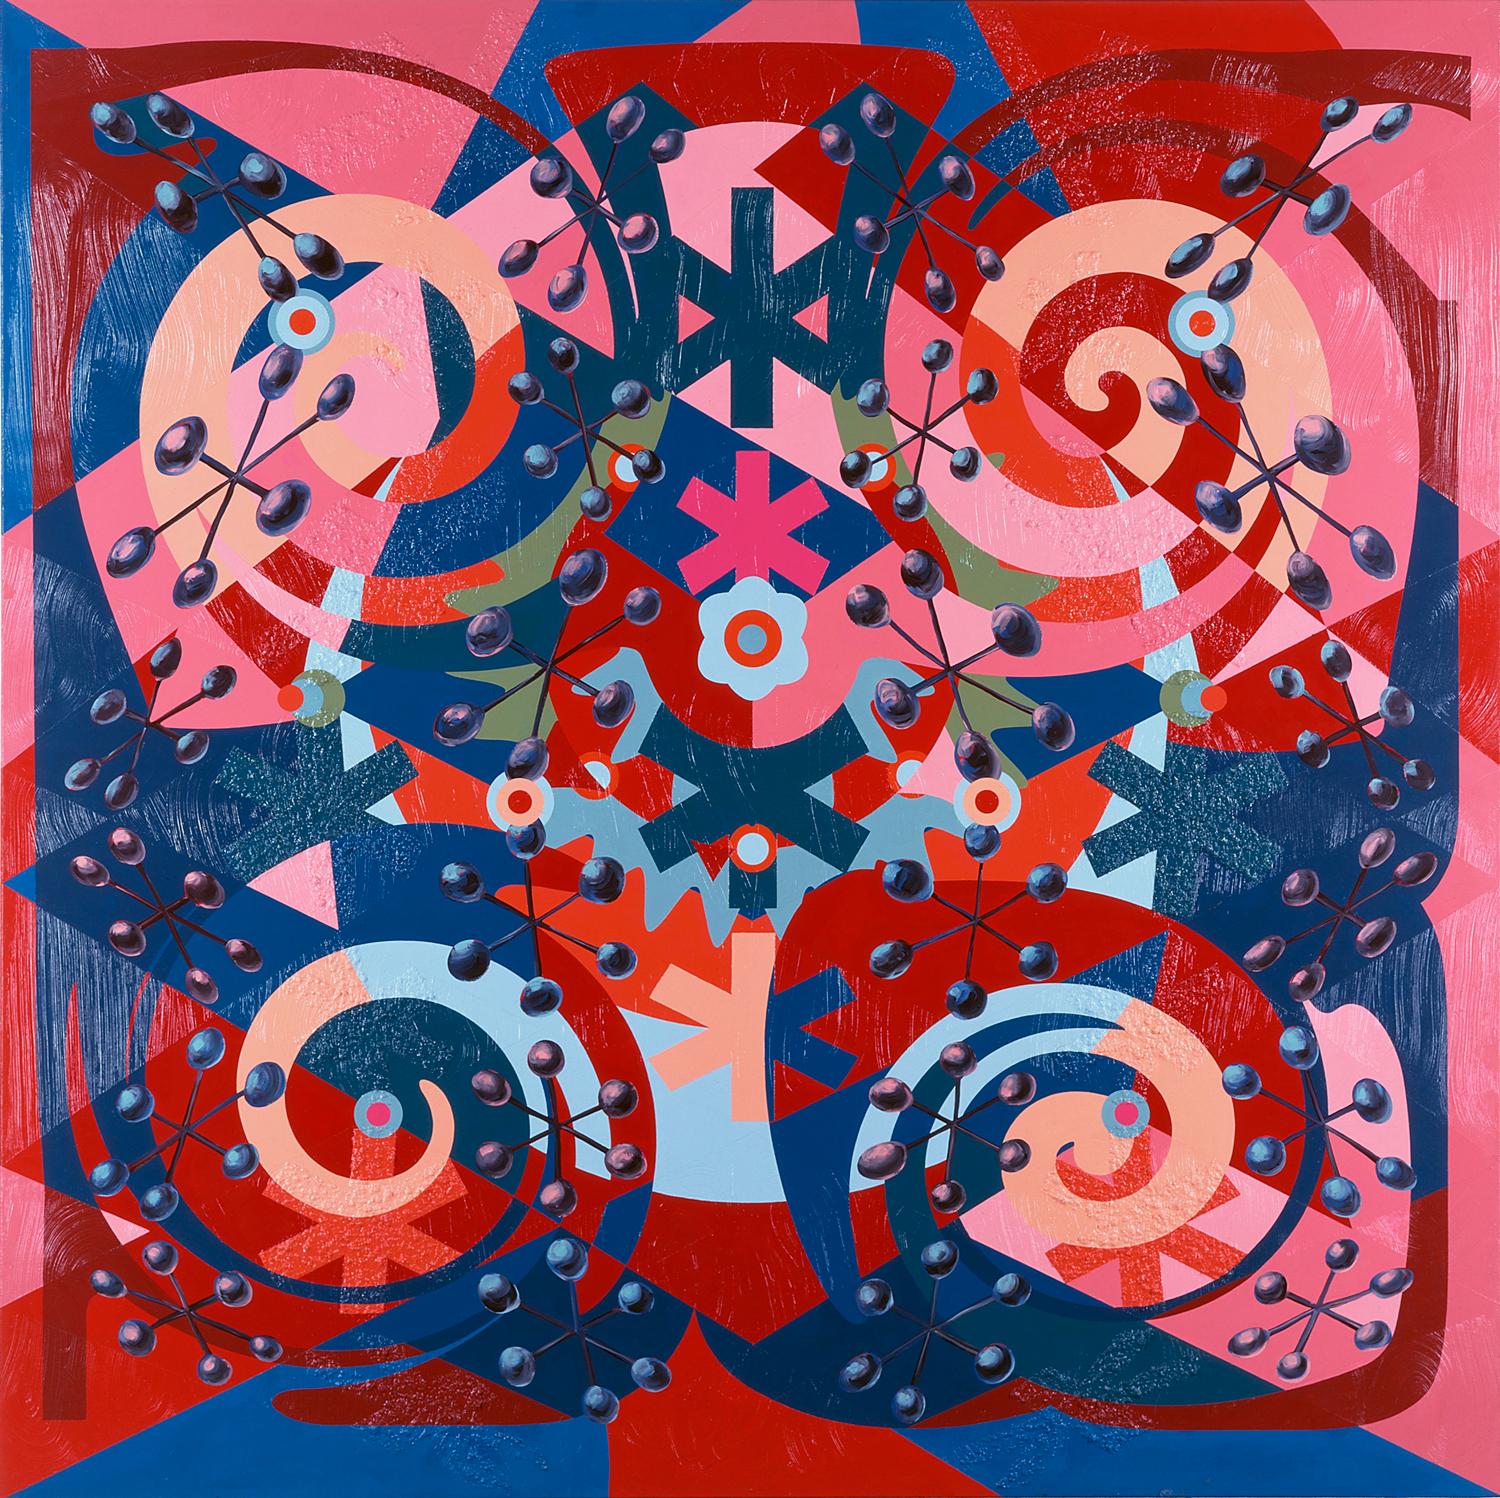 Chow, 1997 acrylic on linen 78 x 78 inches